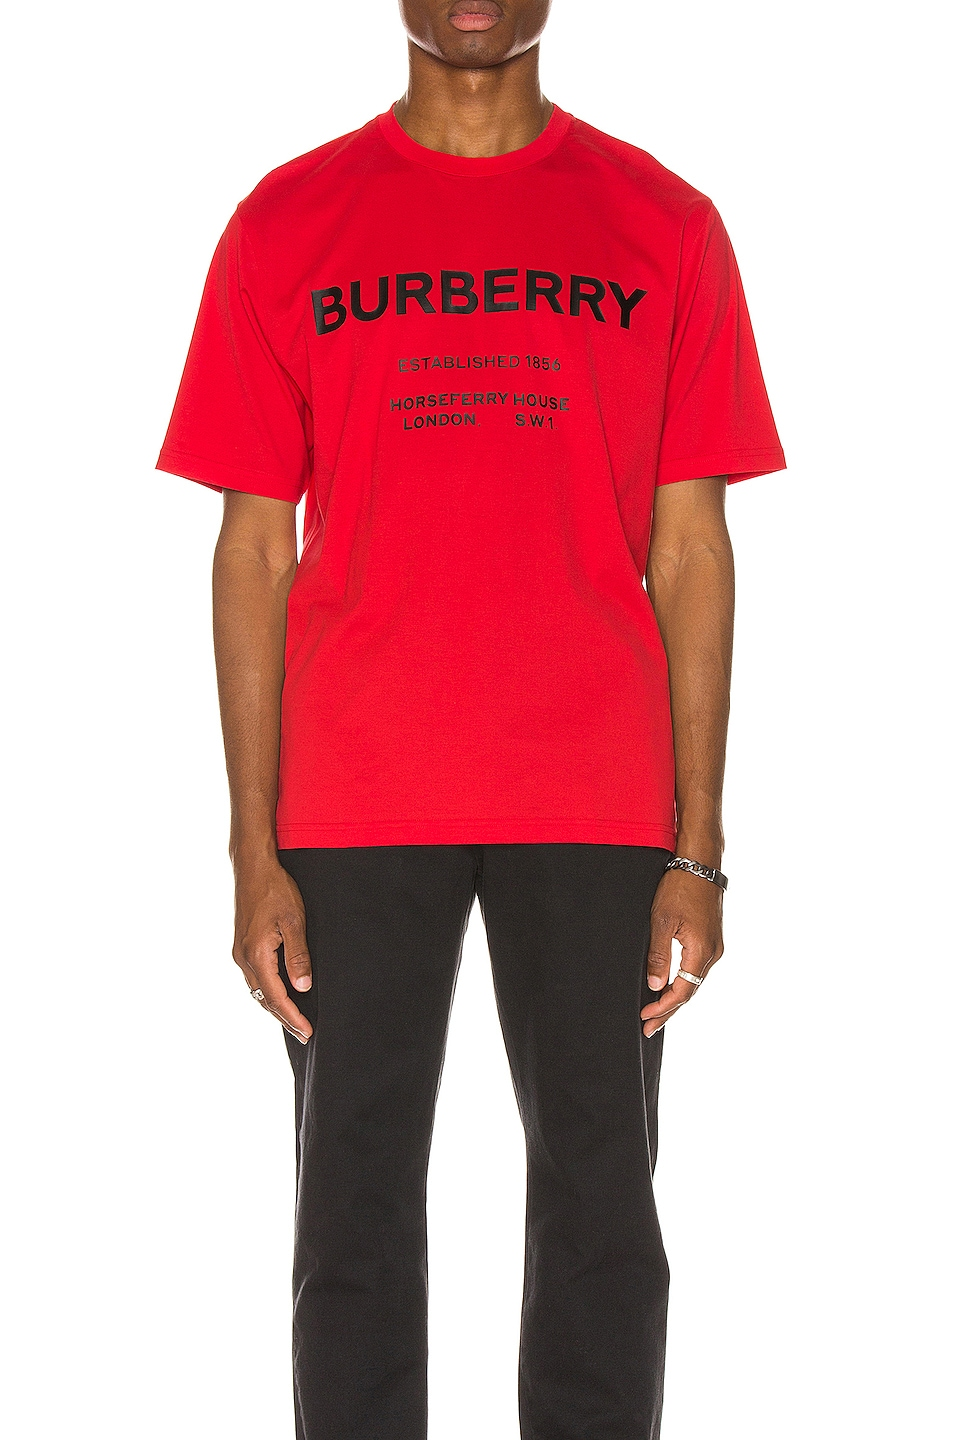 Image 1 of Burberry Established Addressed Logo Tee in Bright Red